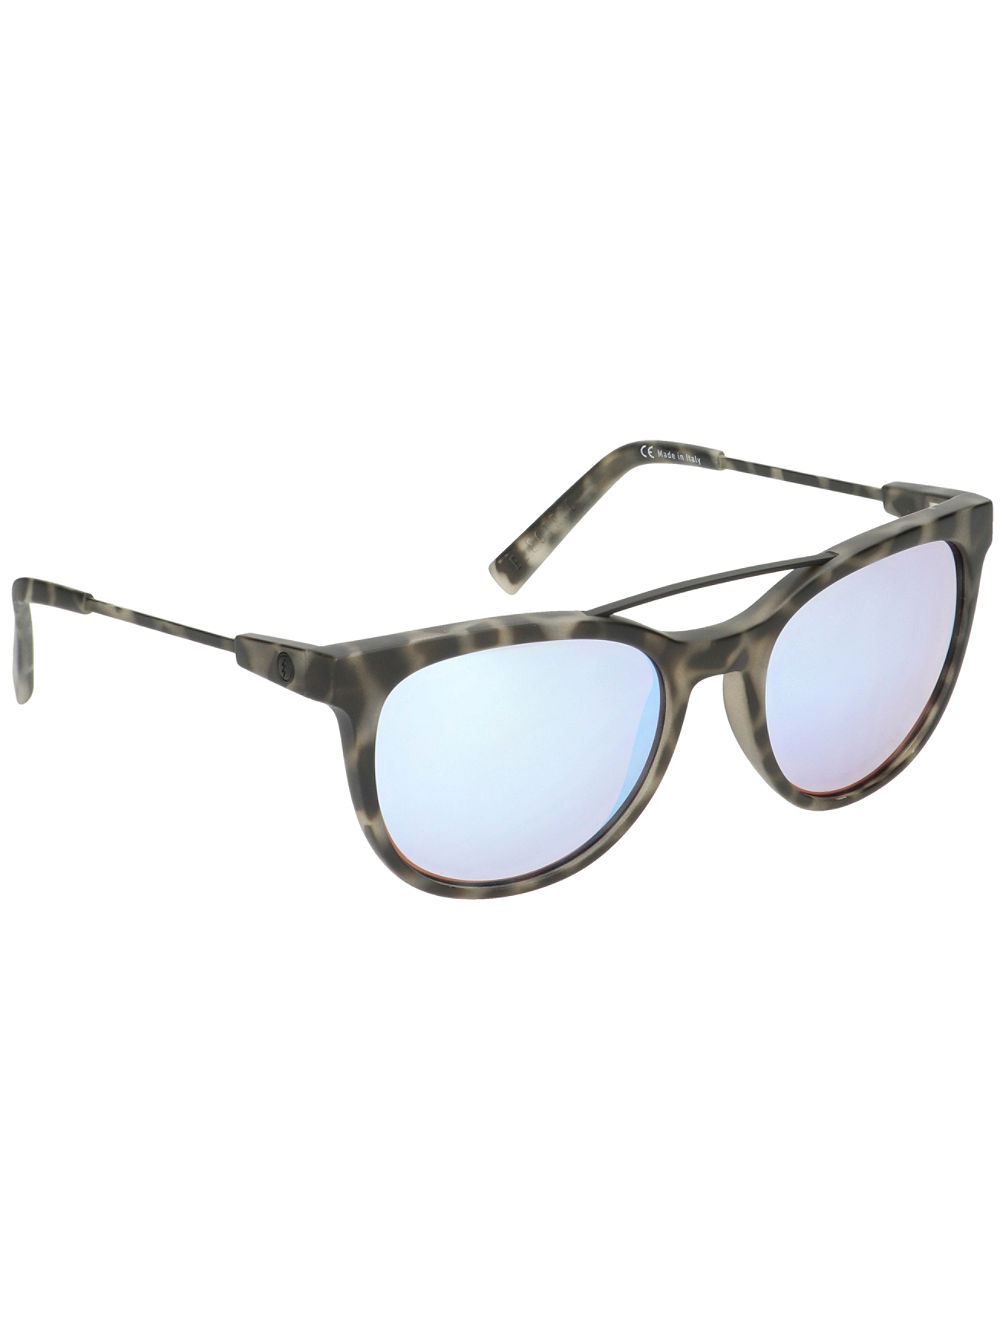 Bengalwire Nude Tort Sonnenbrille